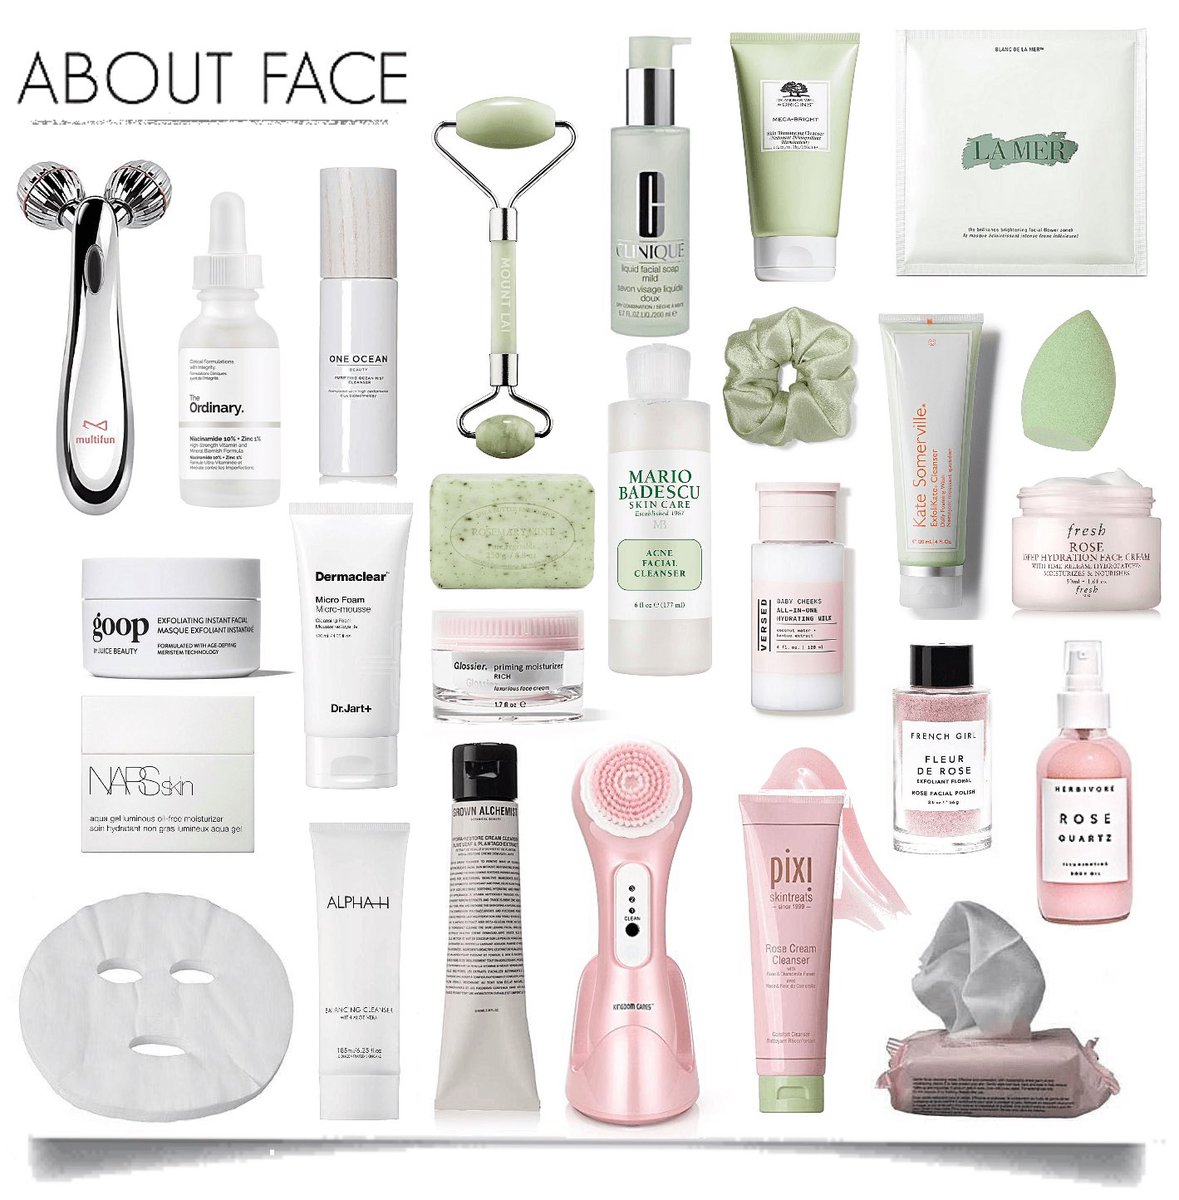 About Face •• #makeupartist #mua #beauty #beautygram #makeupgram #style #today #makeuptips #beautytips #mua #instastyle #instagood #skincare #bestofbeauty #style #Stylist #thestyledstories #styledstories #Newcontentpic.twitter.com/czPOP2RKHV